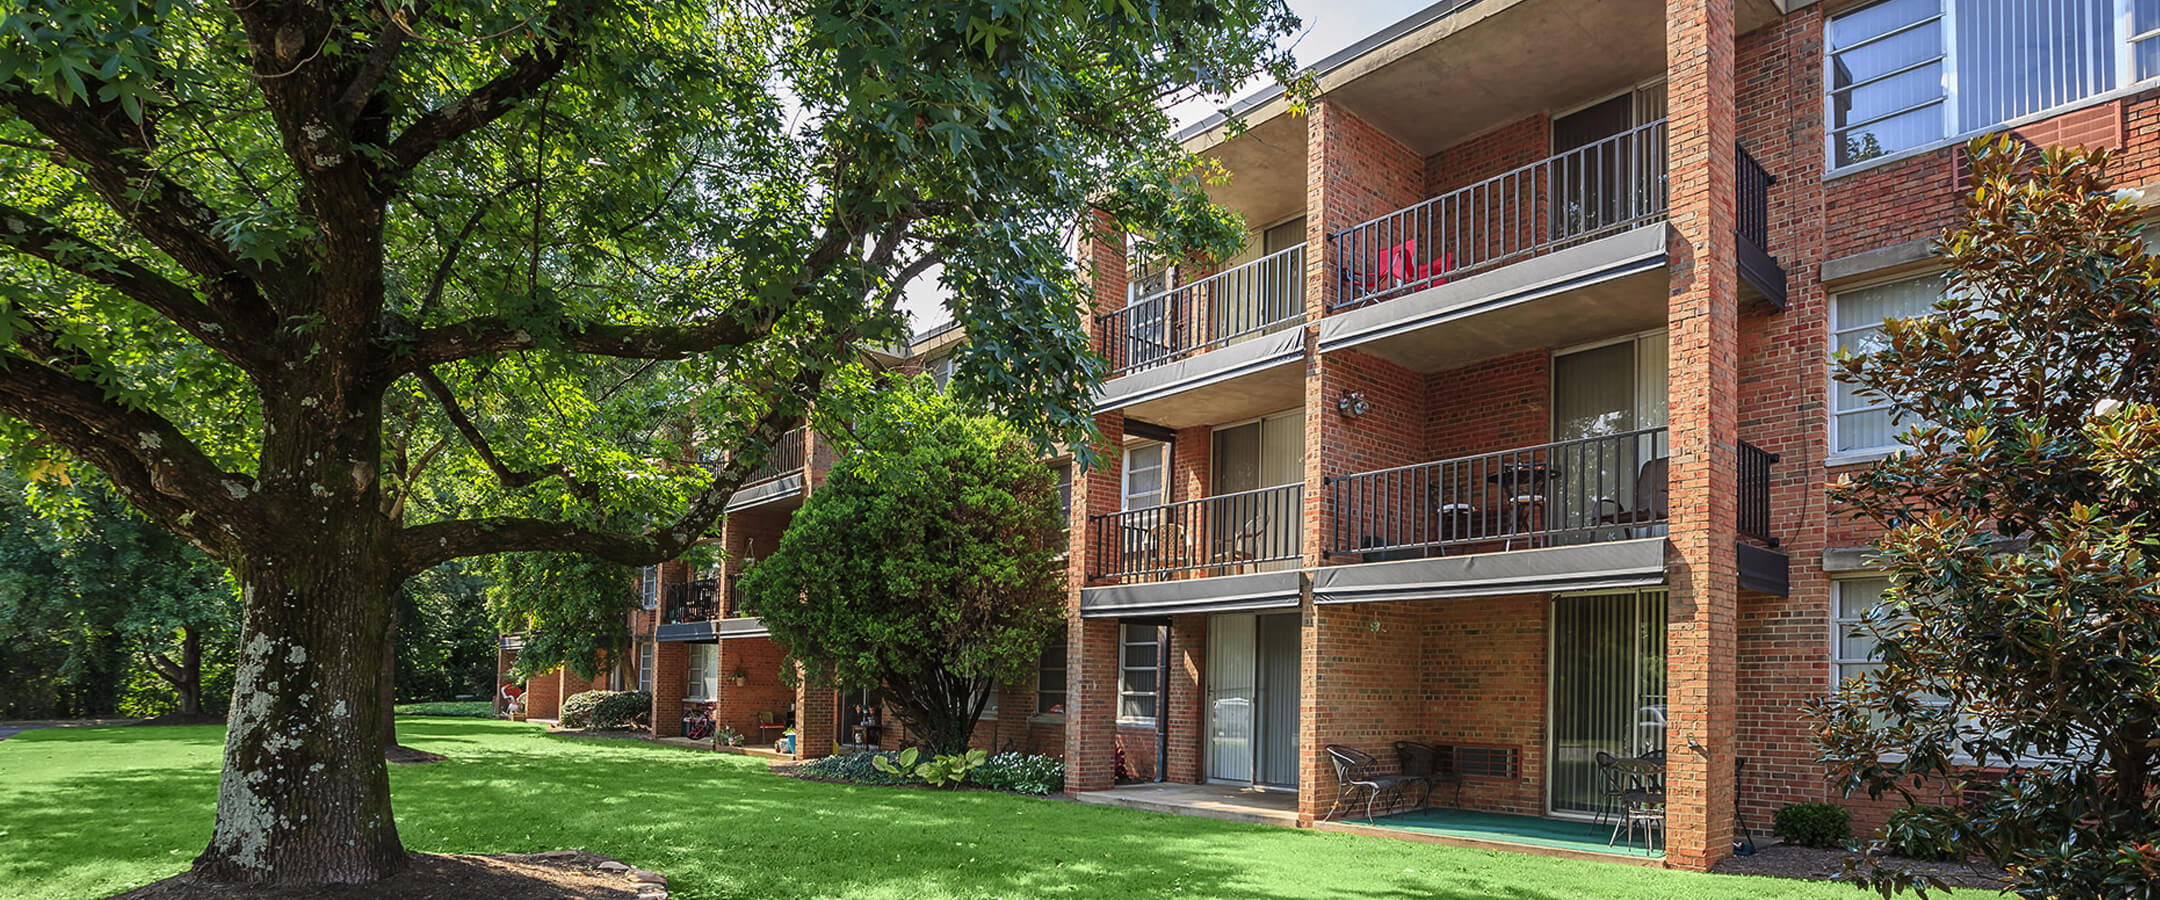 One Bedroom Apartments In Knoxville Tn 28 Images Cedar Hill Apartments Knoxville Tn